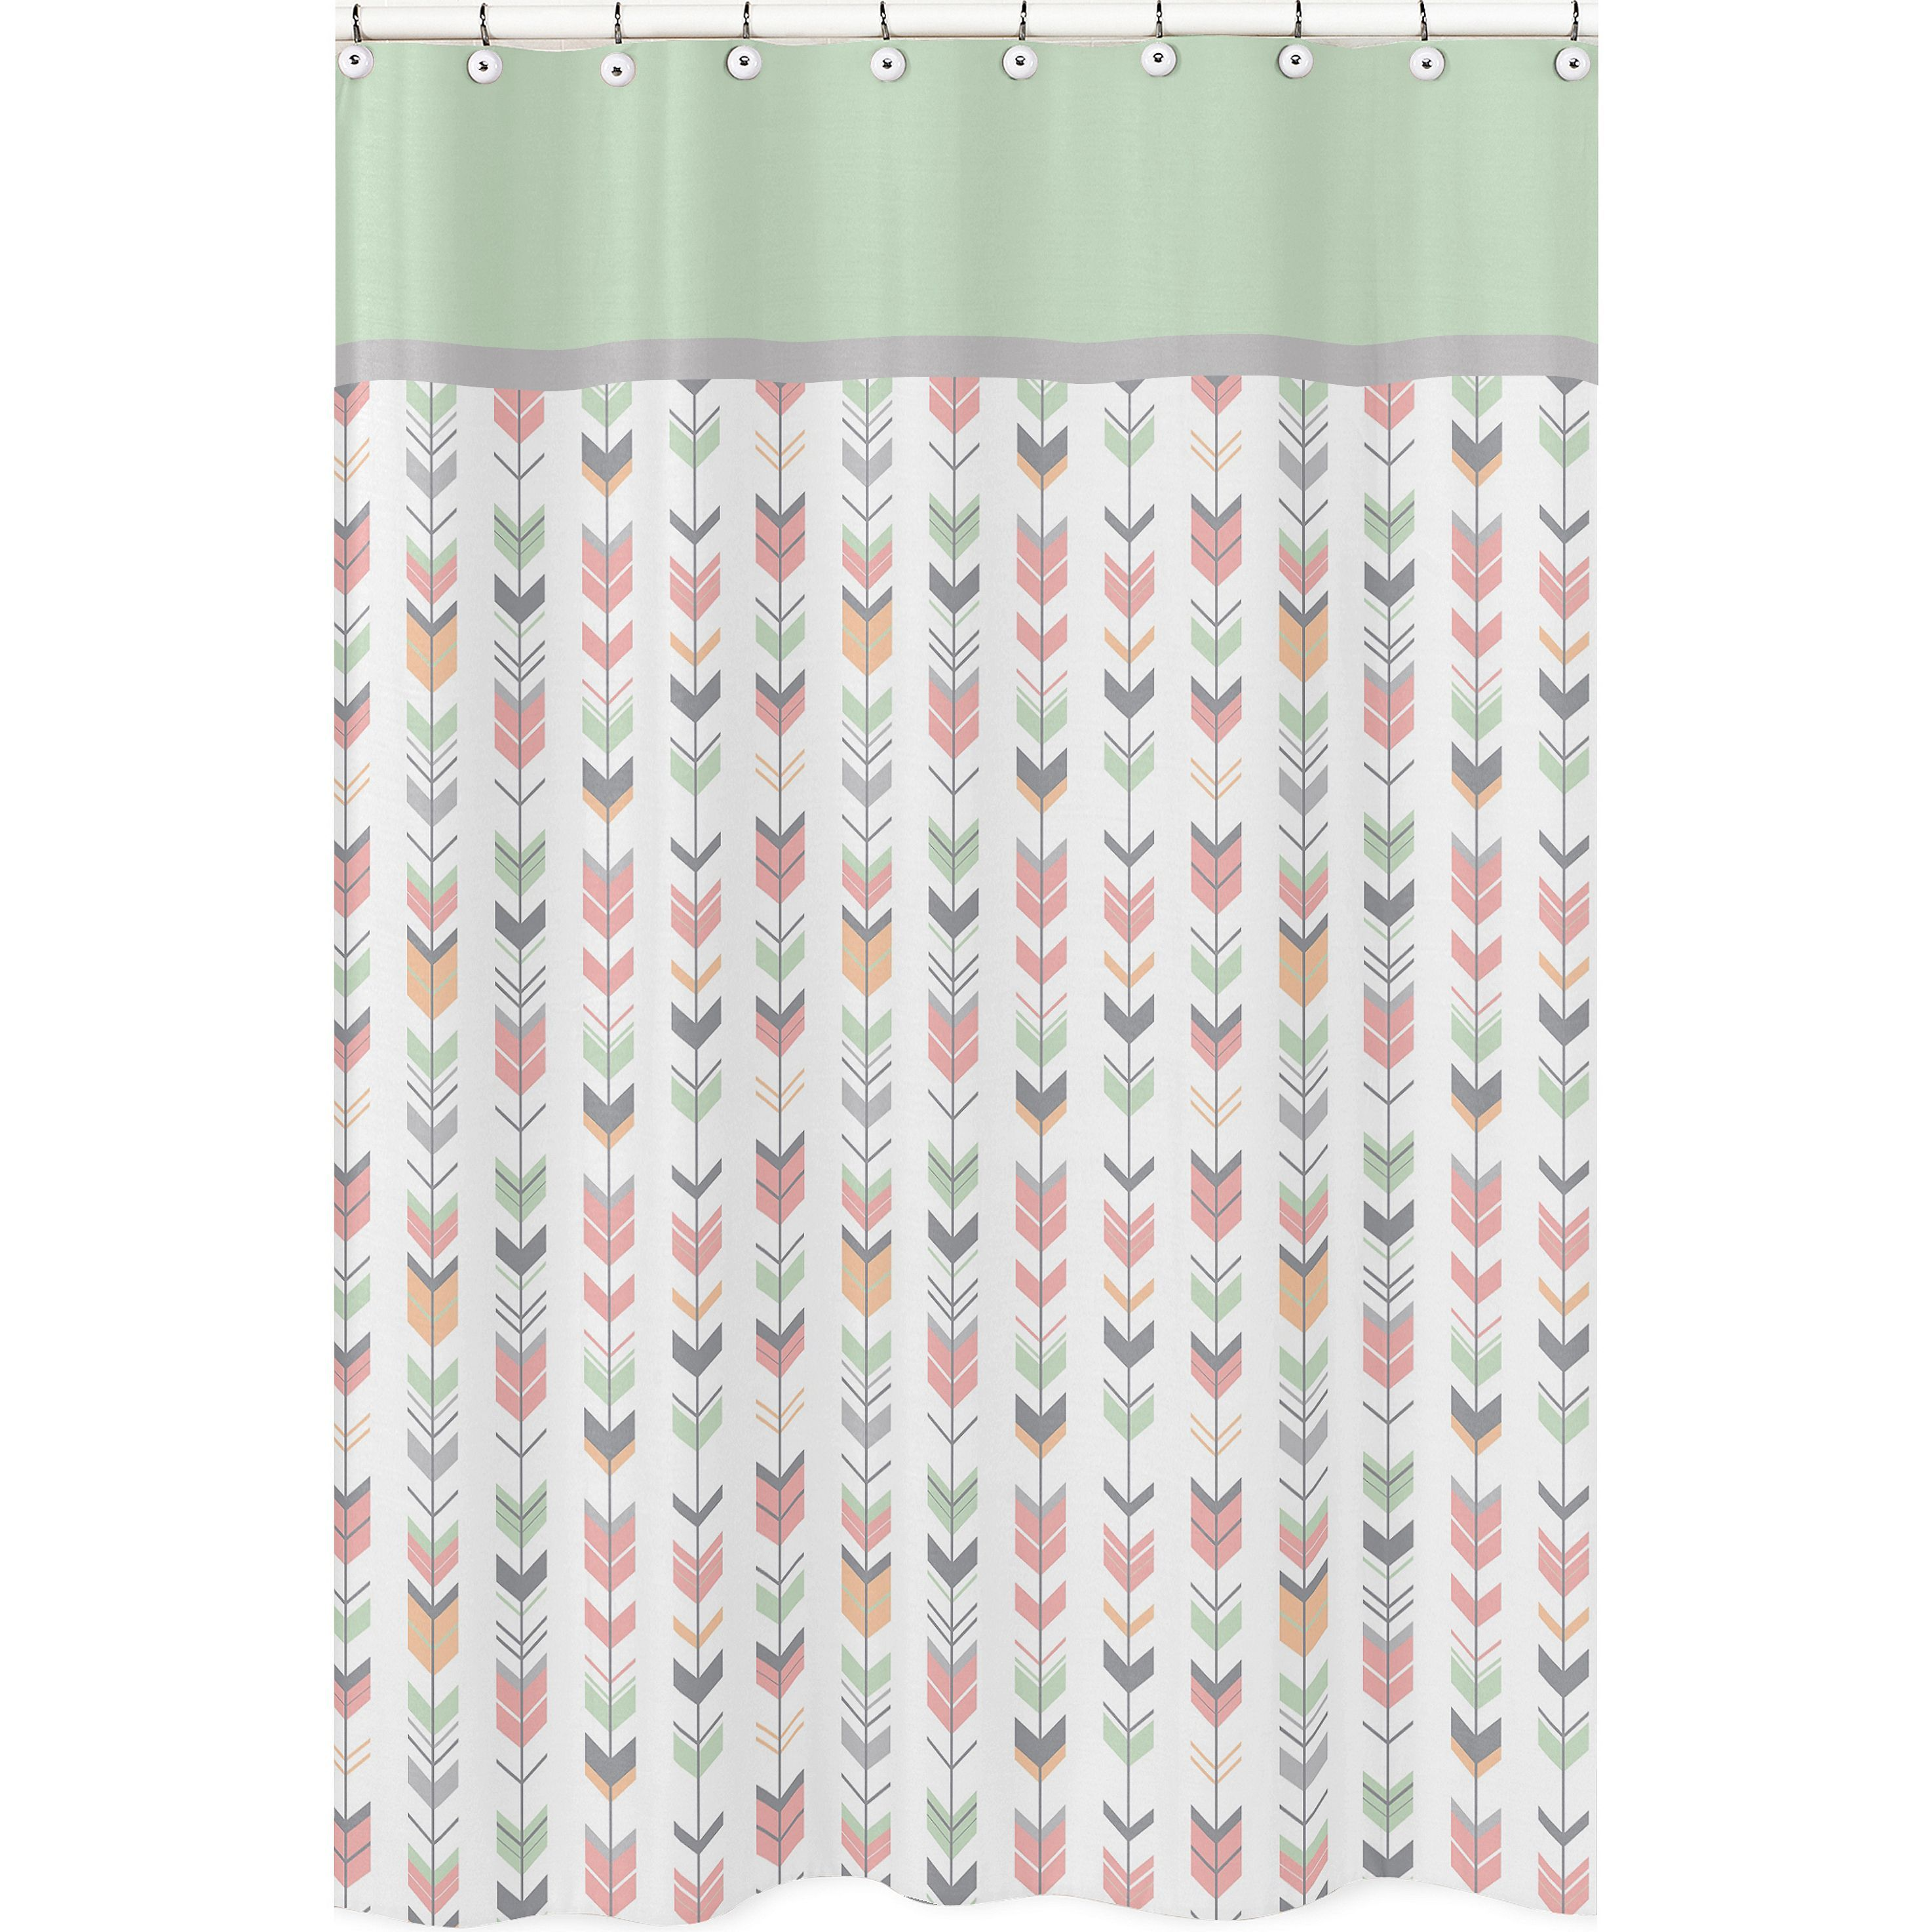 Coral and mint shower curtain - Coral And Mint Mod Arrow Shower Curtain By Sweet Jojo Designs